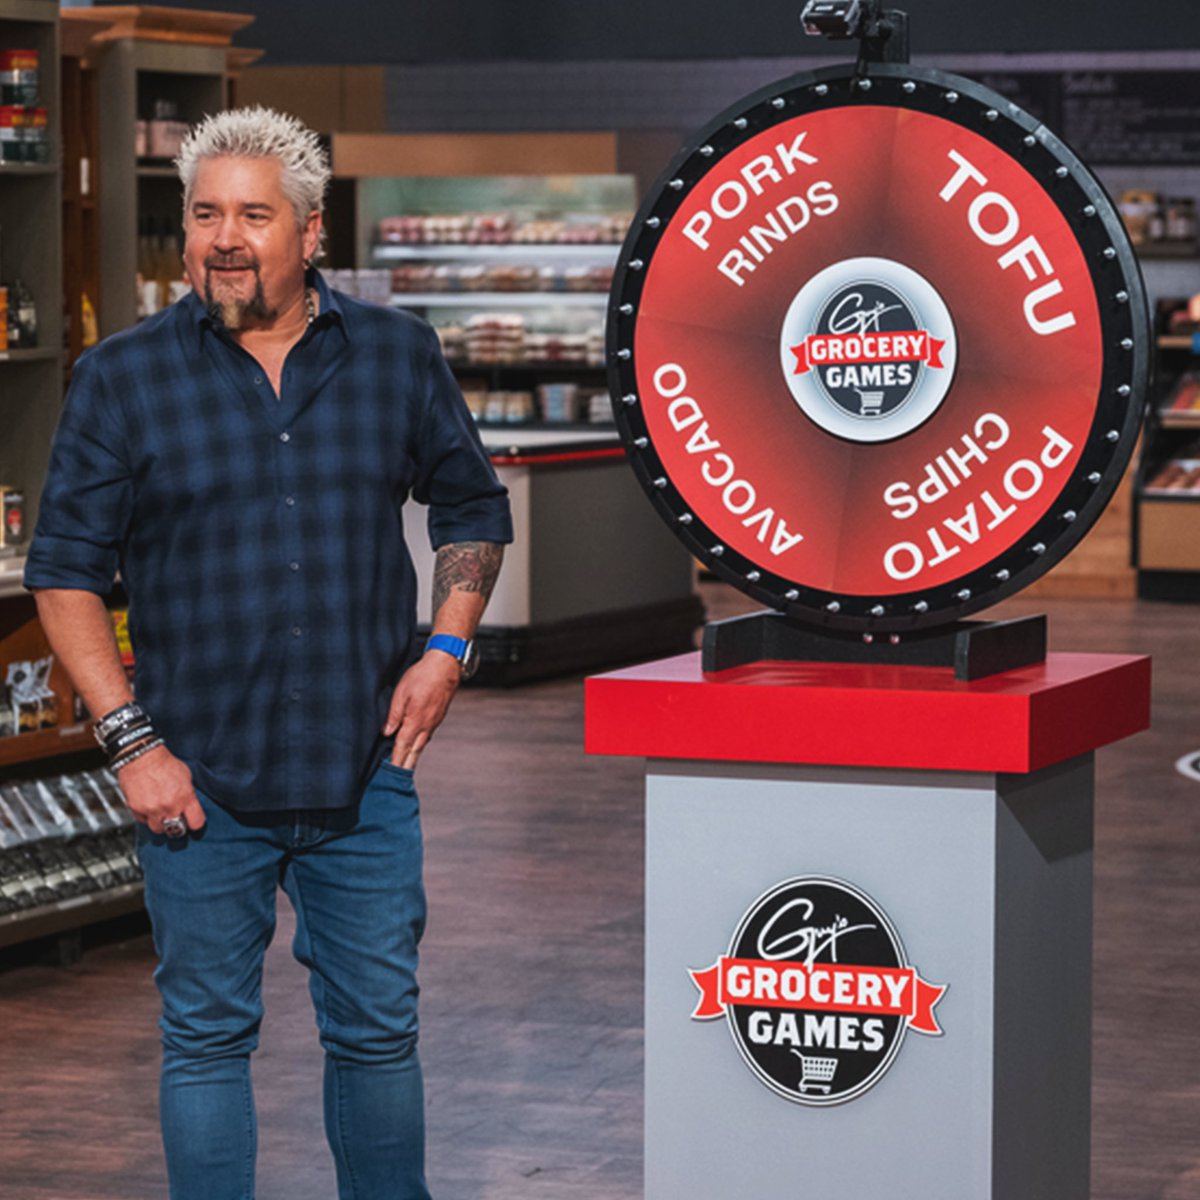 We're wheelin' and dealin' on tonight's episode of #GroceryGames 😂